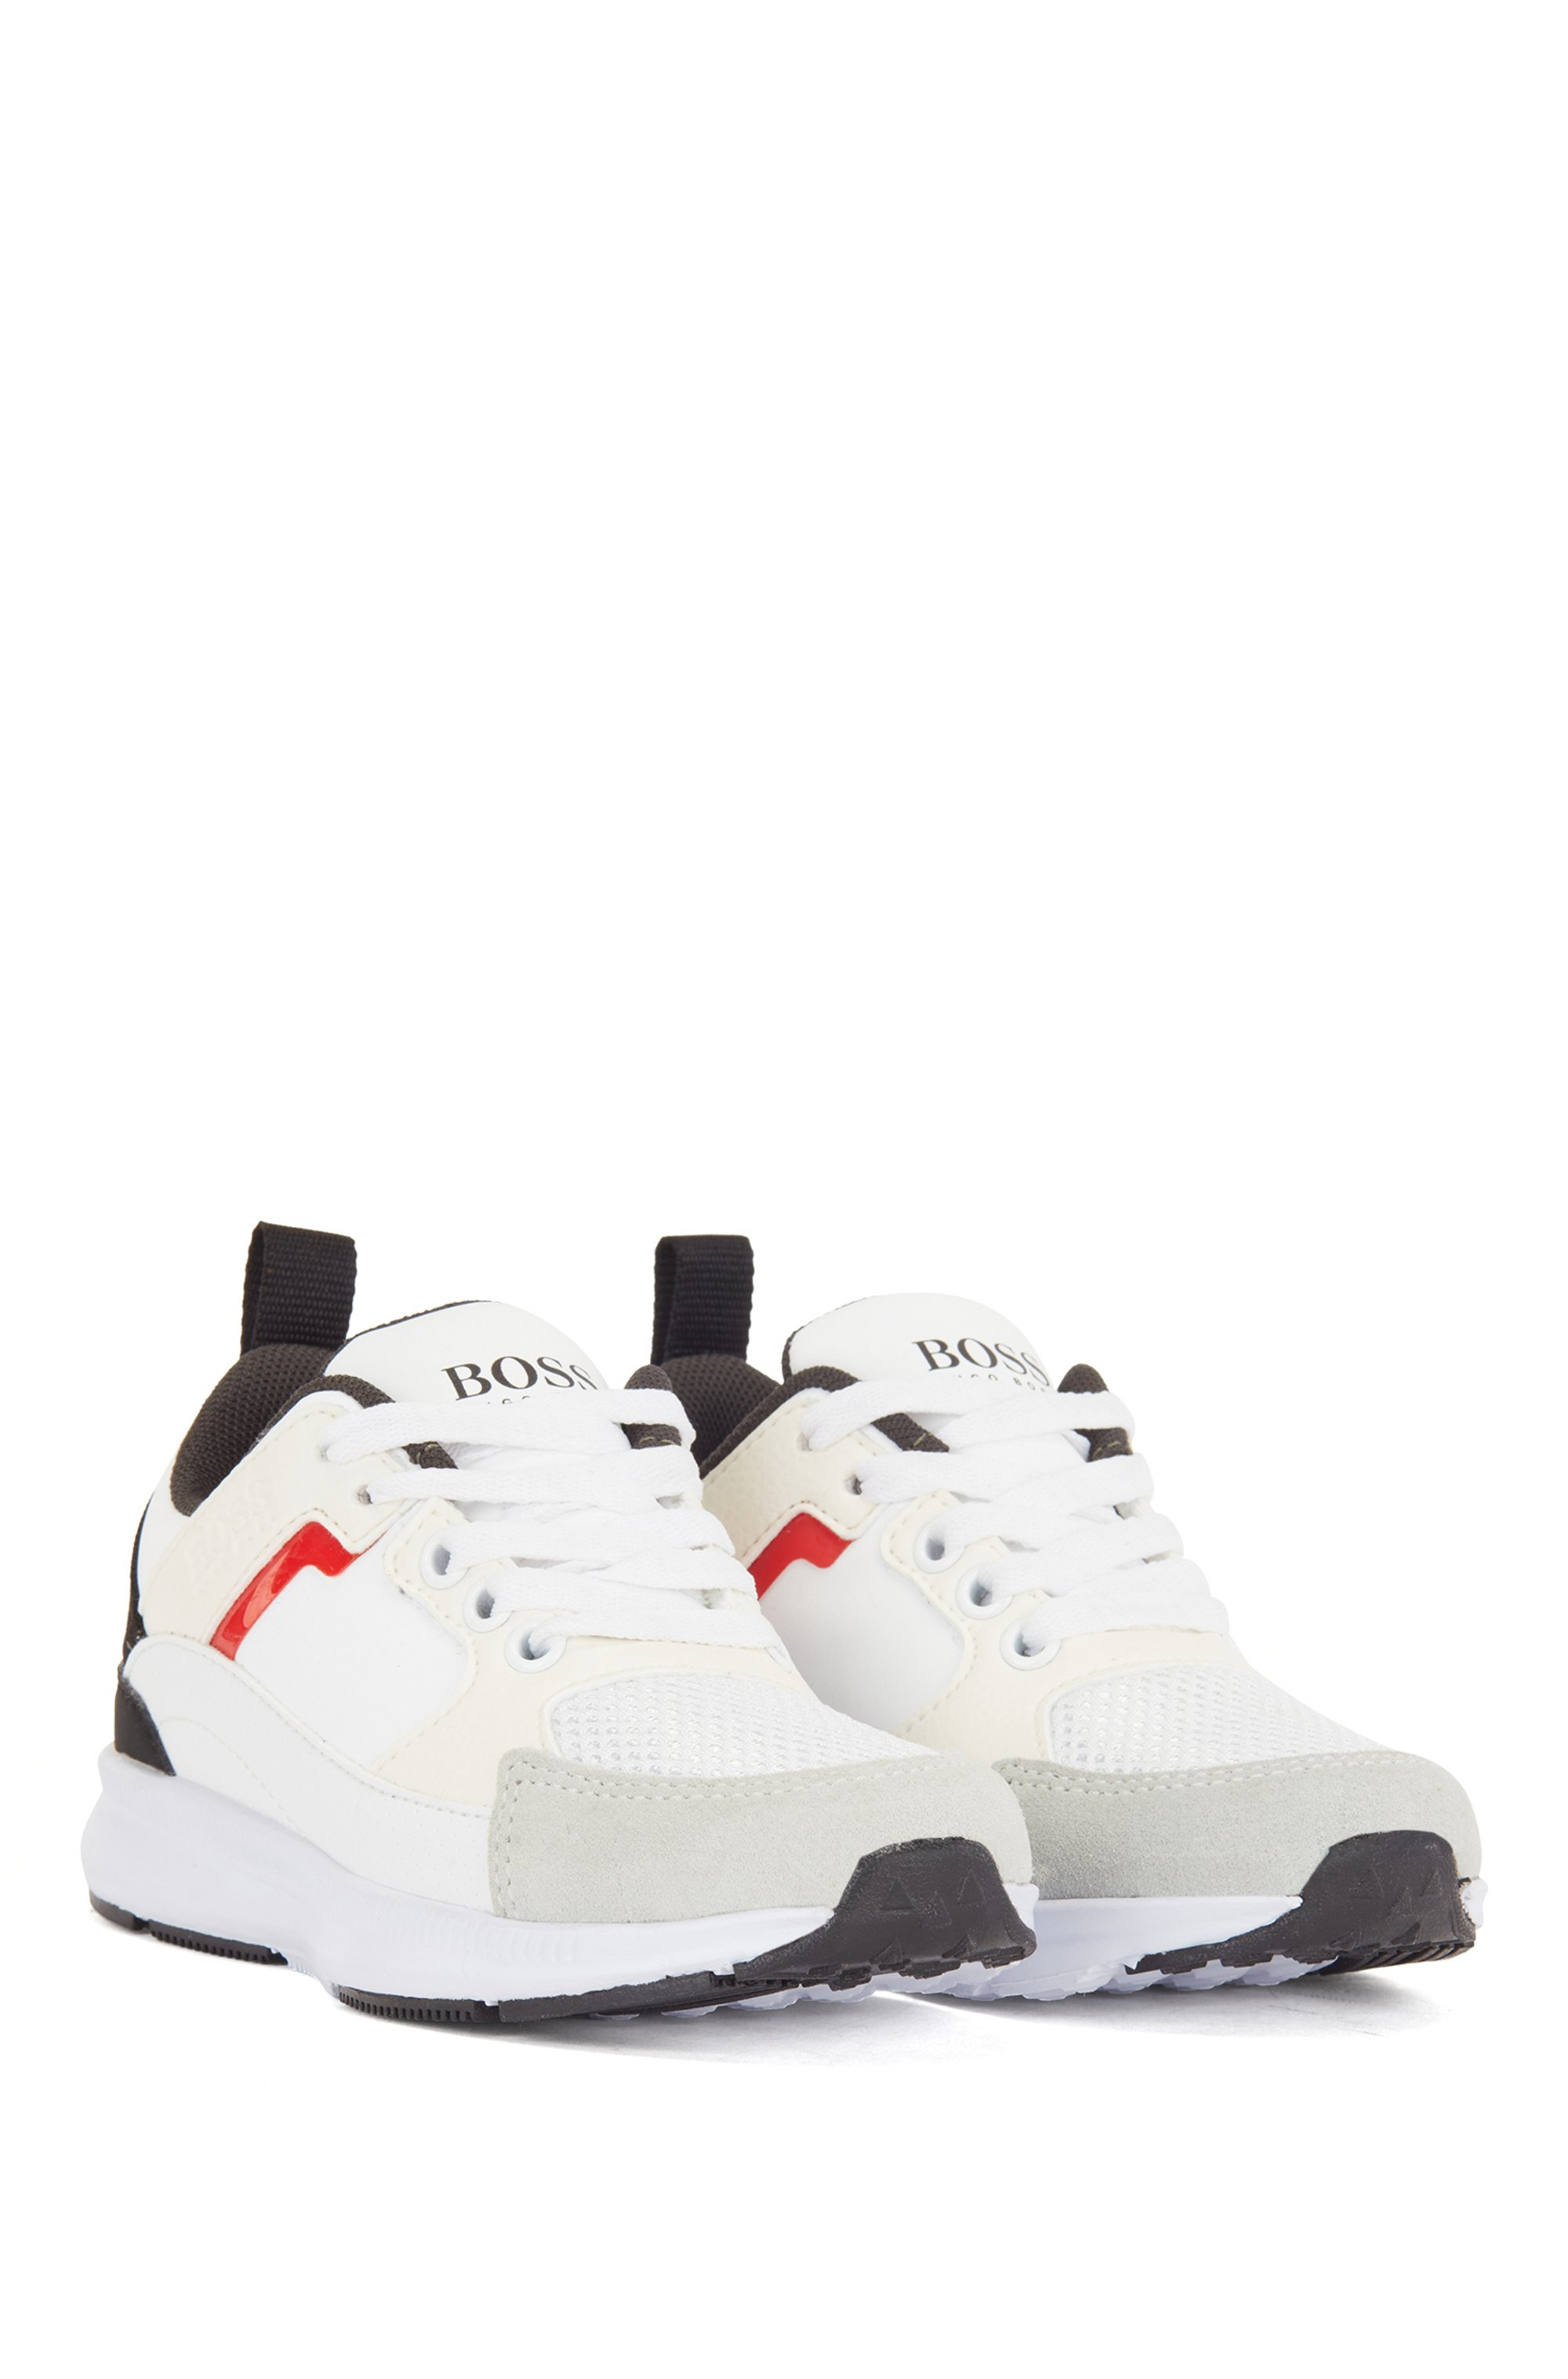 Kids' trainers in mixed materials with logo details, White